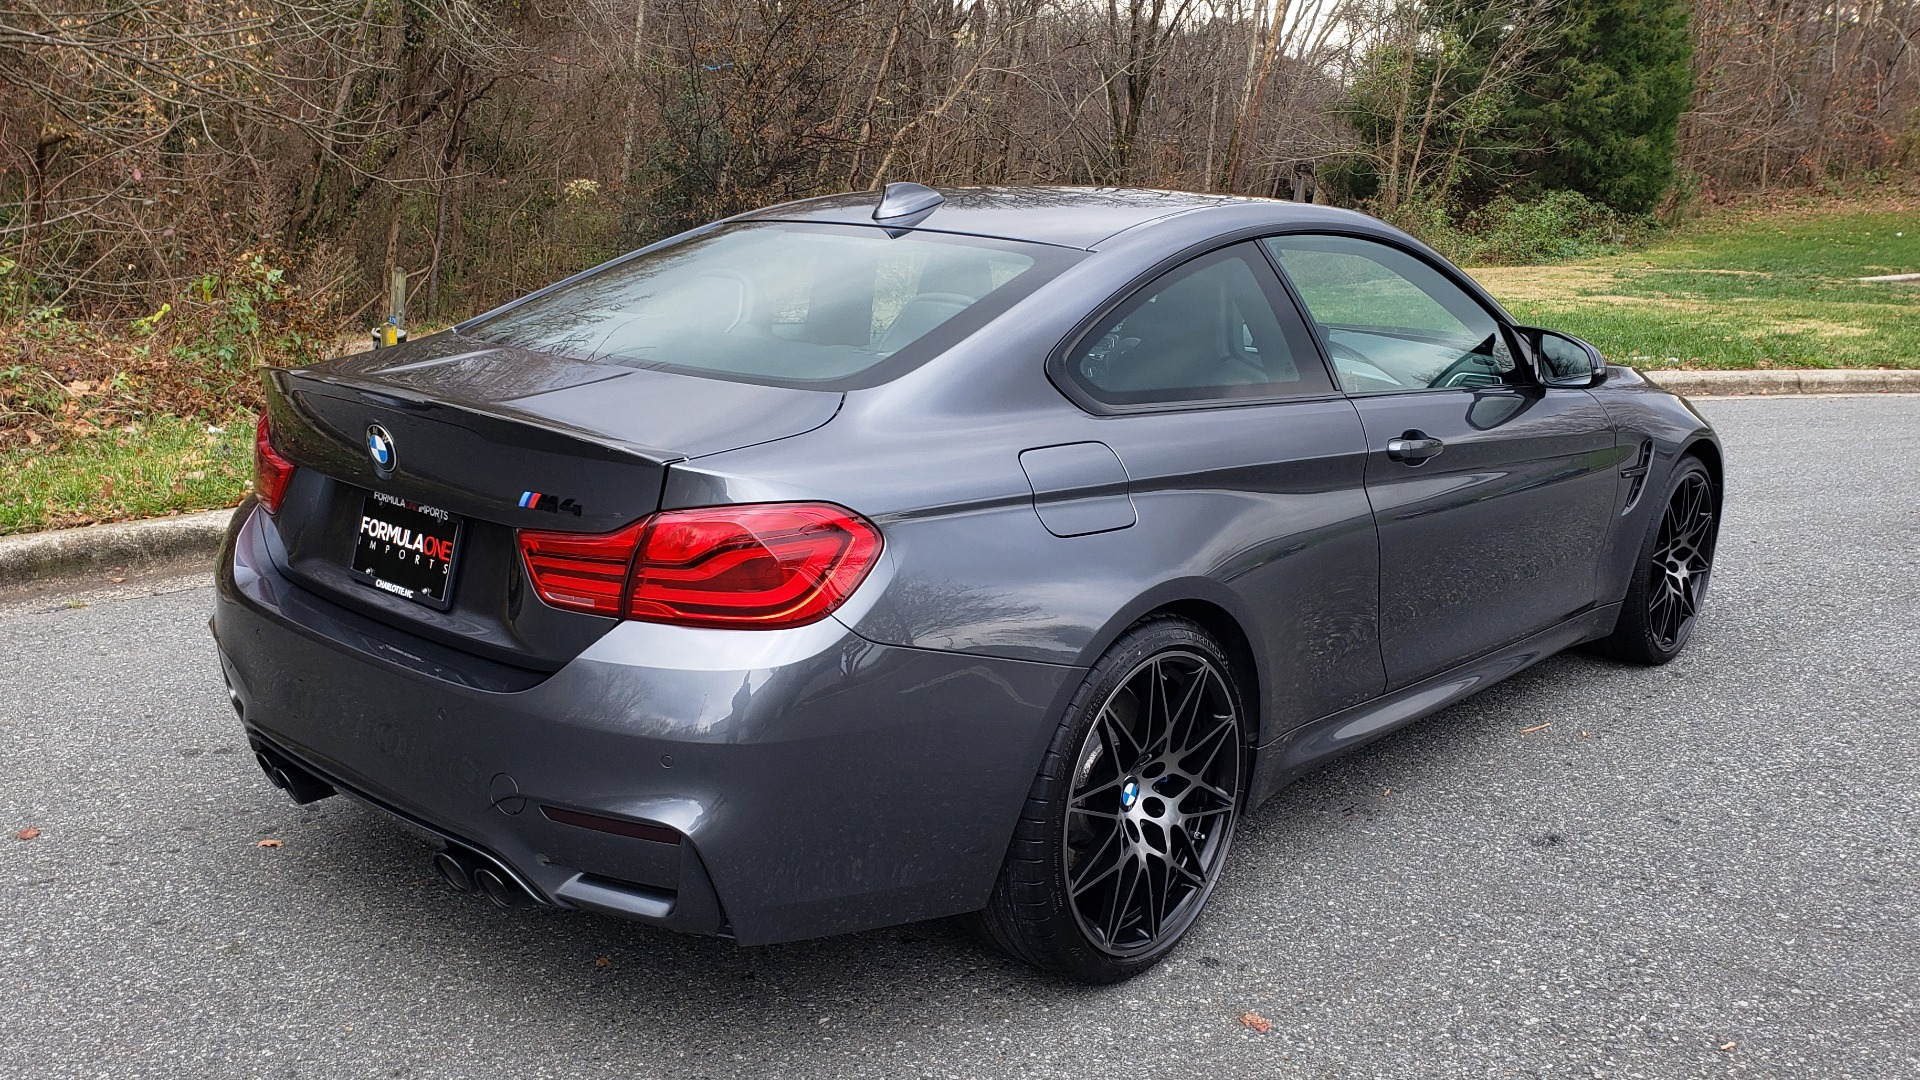 Used 2018 BMW M4 M-COMP / EXEC PKG / 7-SPD DBL CLUTCH / NAV / REARVIEW for sale Sold at Formula Imports in Charlotte NC 28227 7